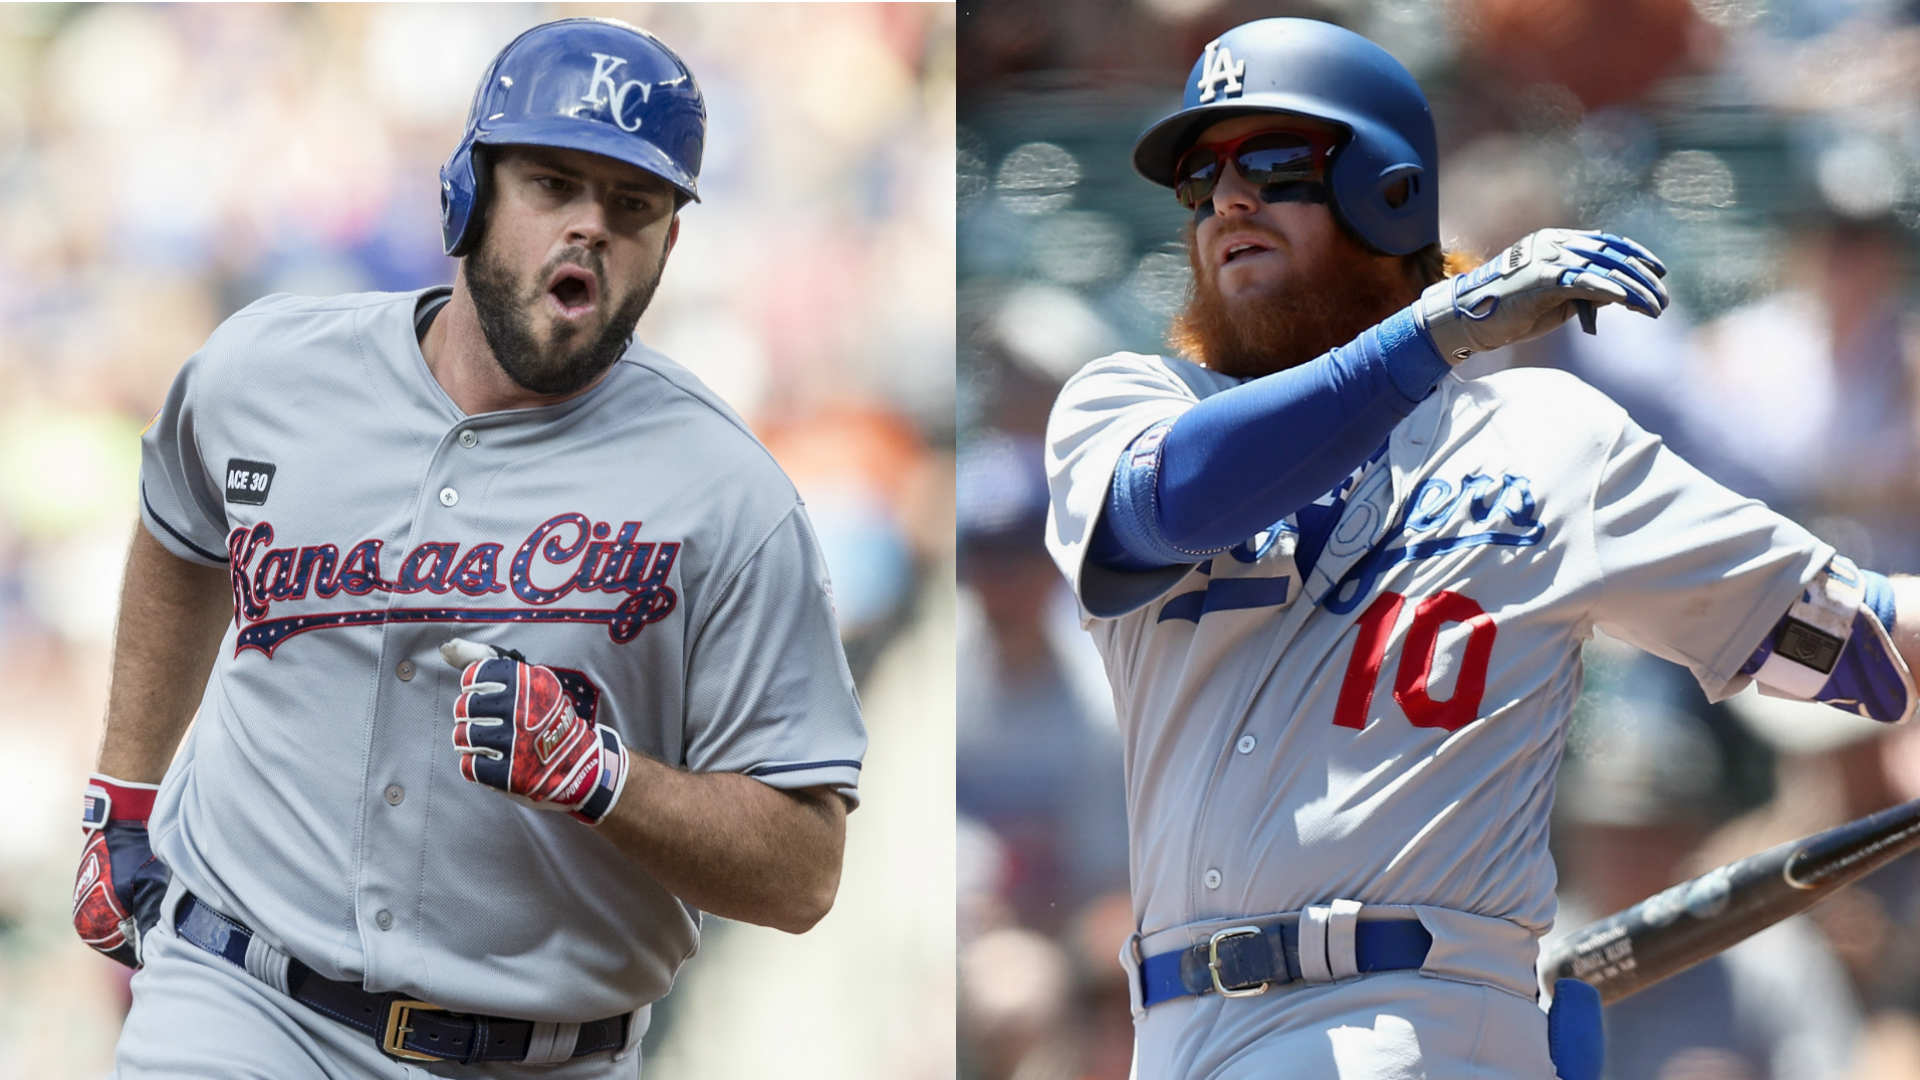 Royals' Mike Moustakas wins Final Vote, selected to All-Star Game